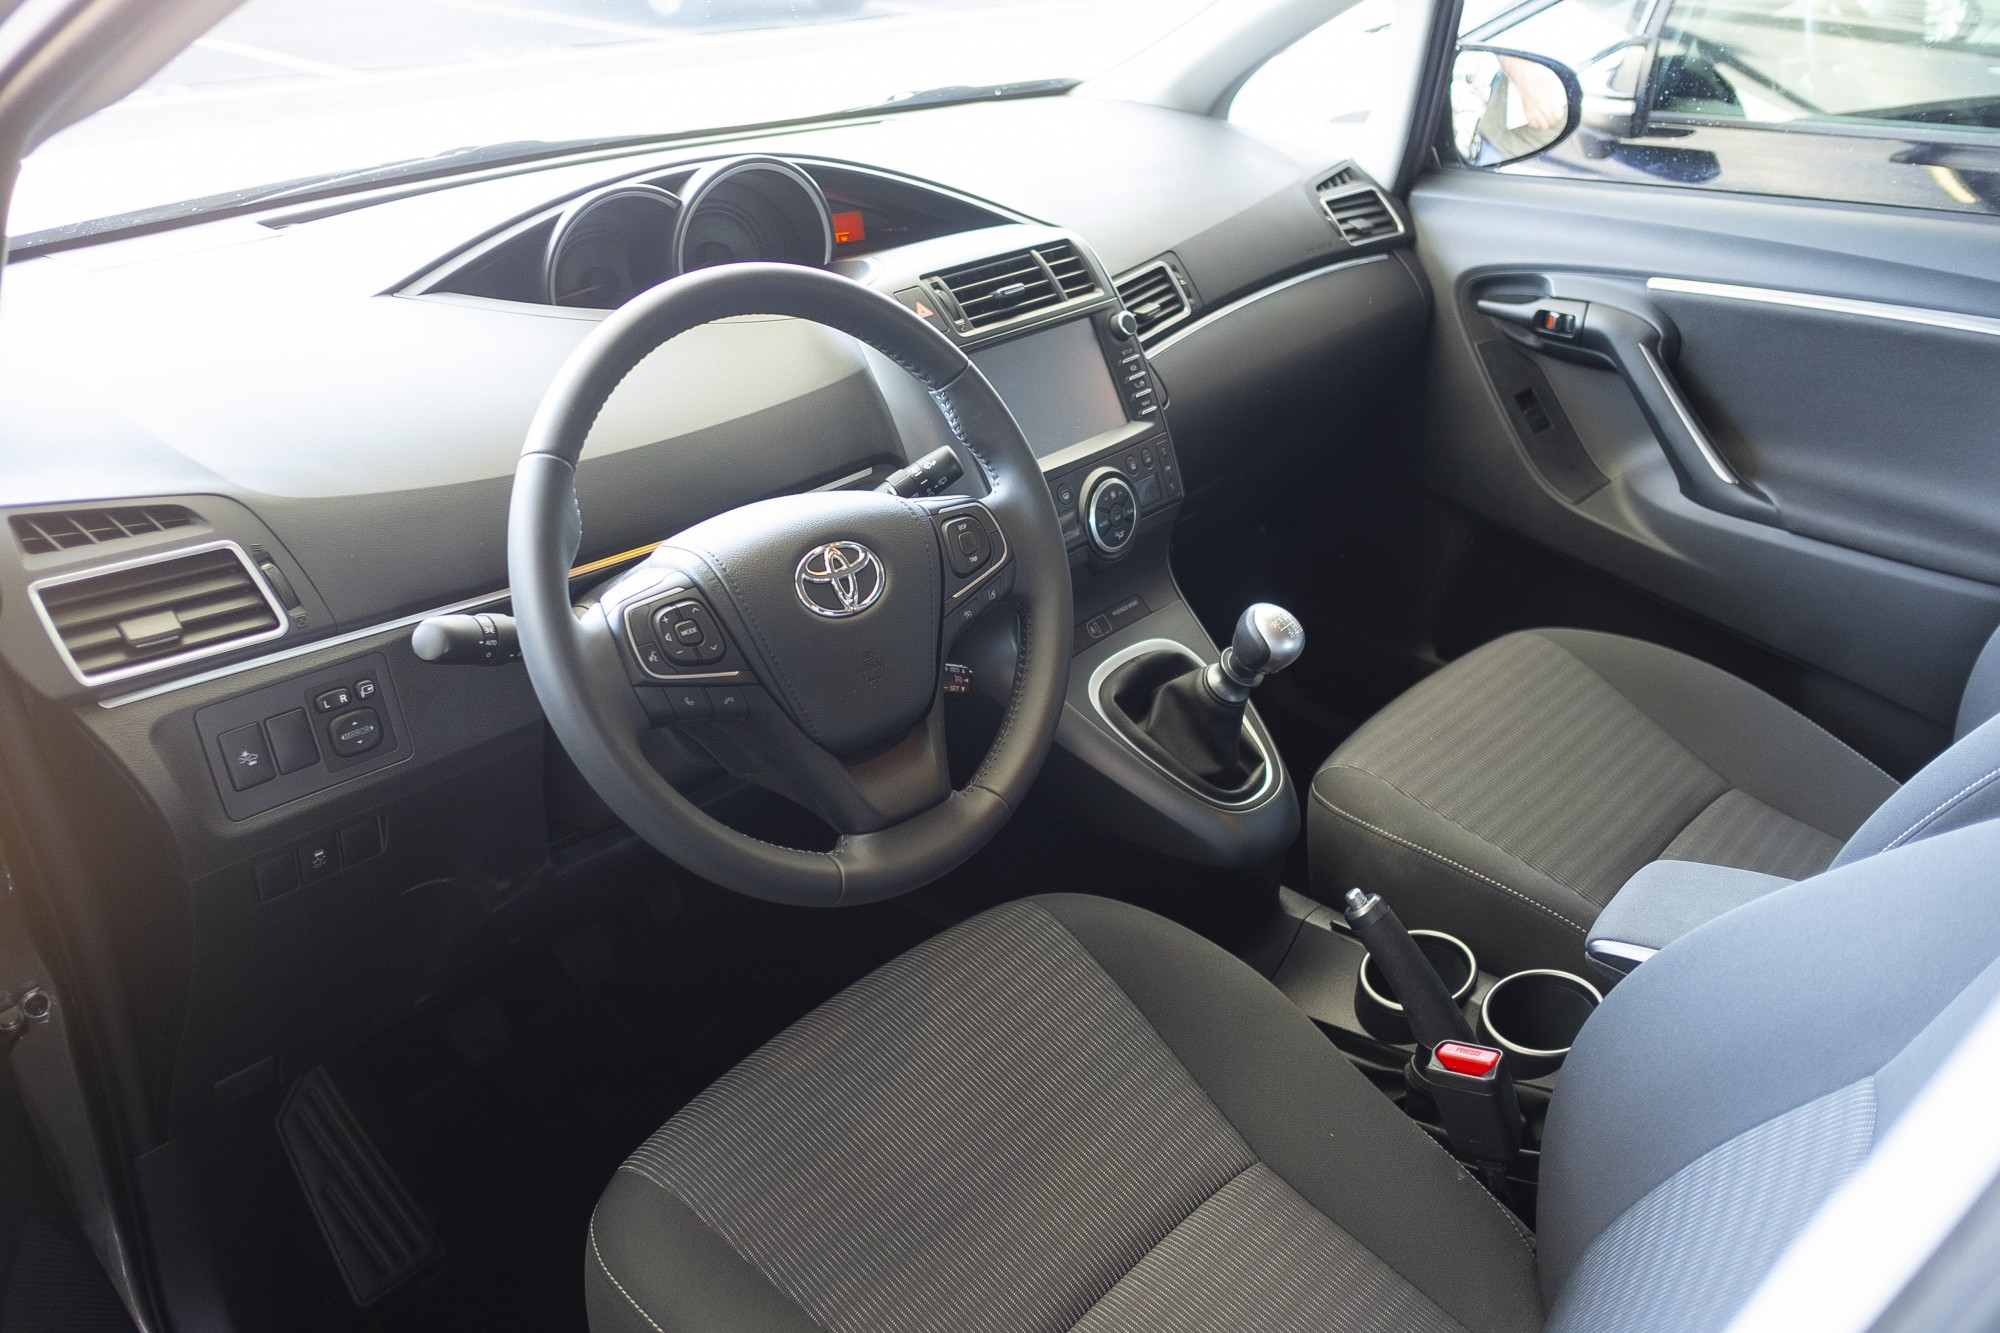 Mistakes when renting a car in Europe will be, car, only, trips, week, car, is, franchise, author, additional, automatic, case, connection, total, may, magazine, car, everyone, Twitter, Facebook